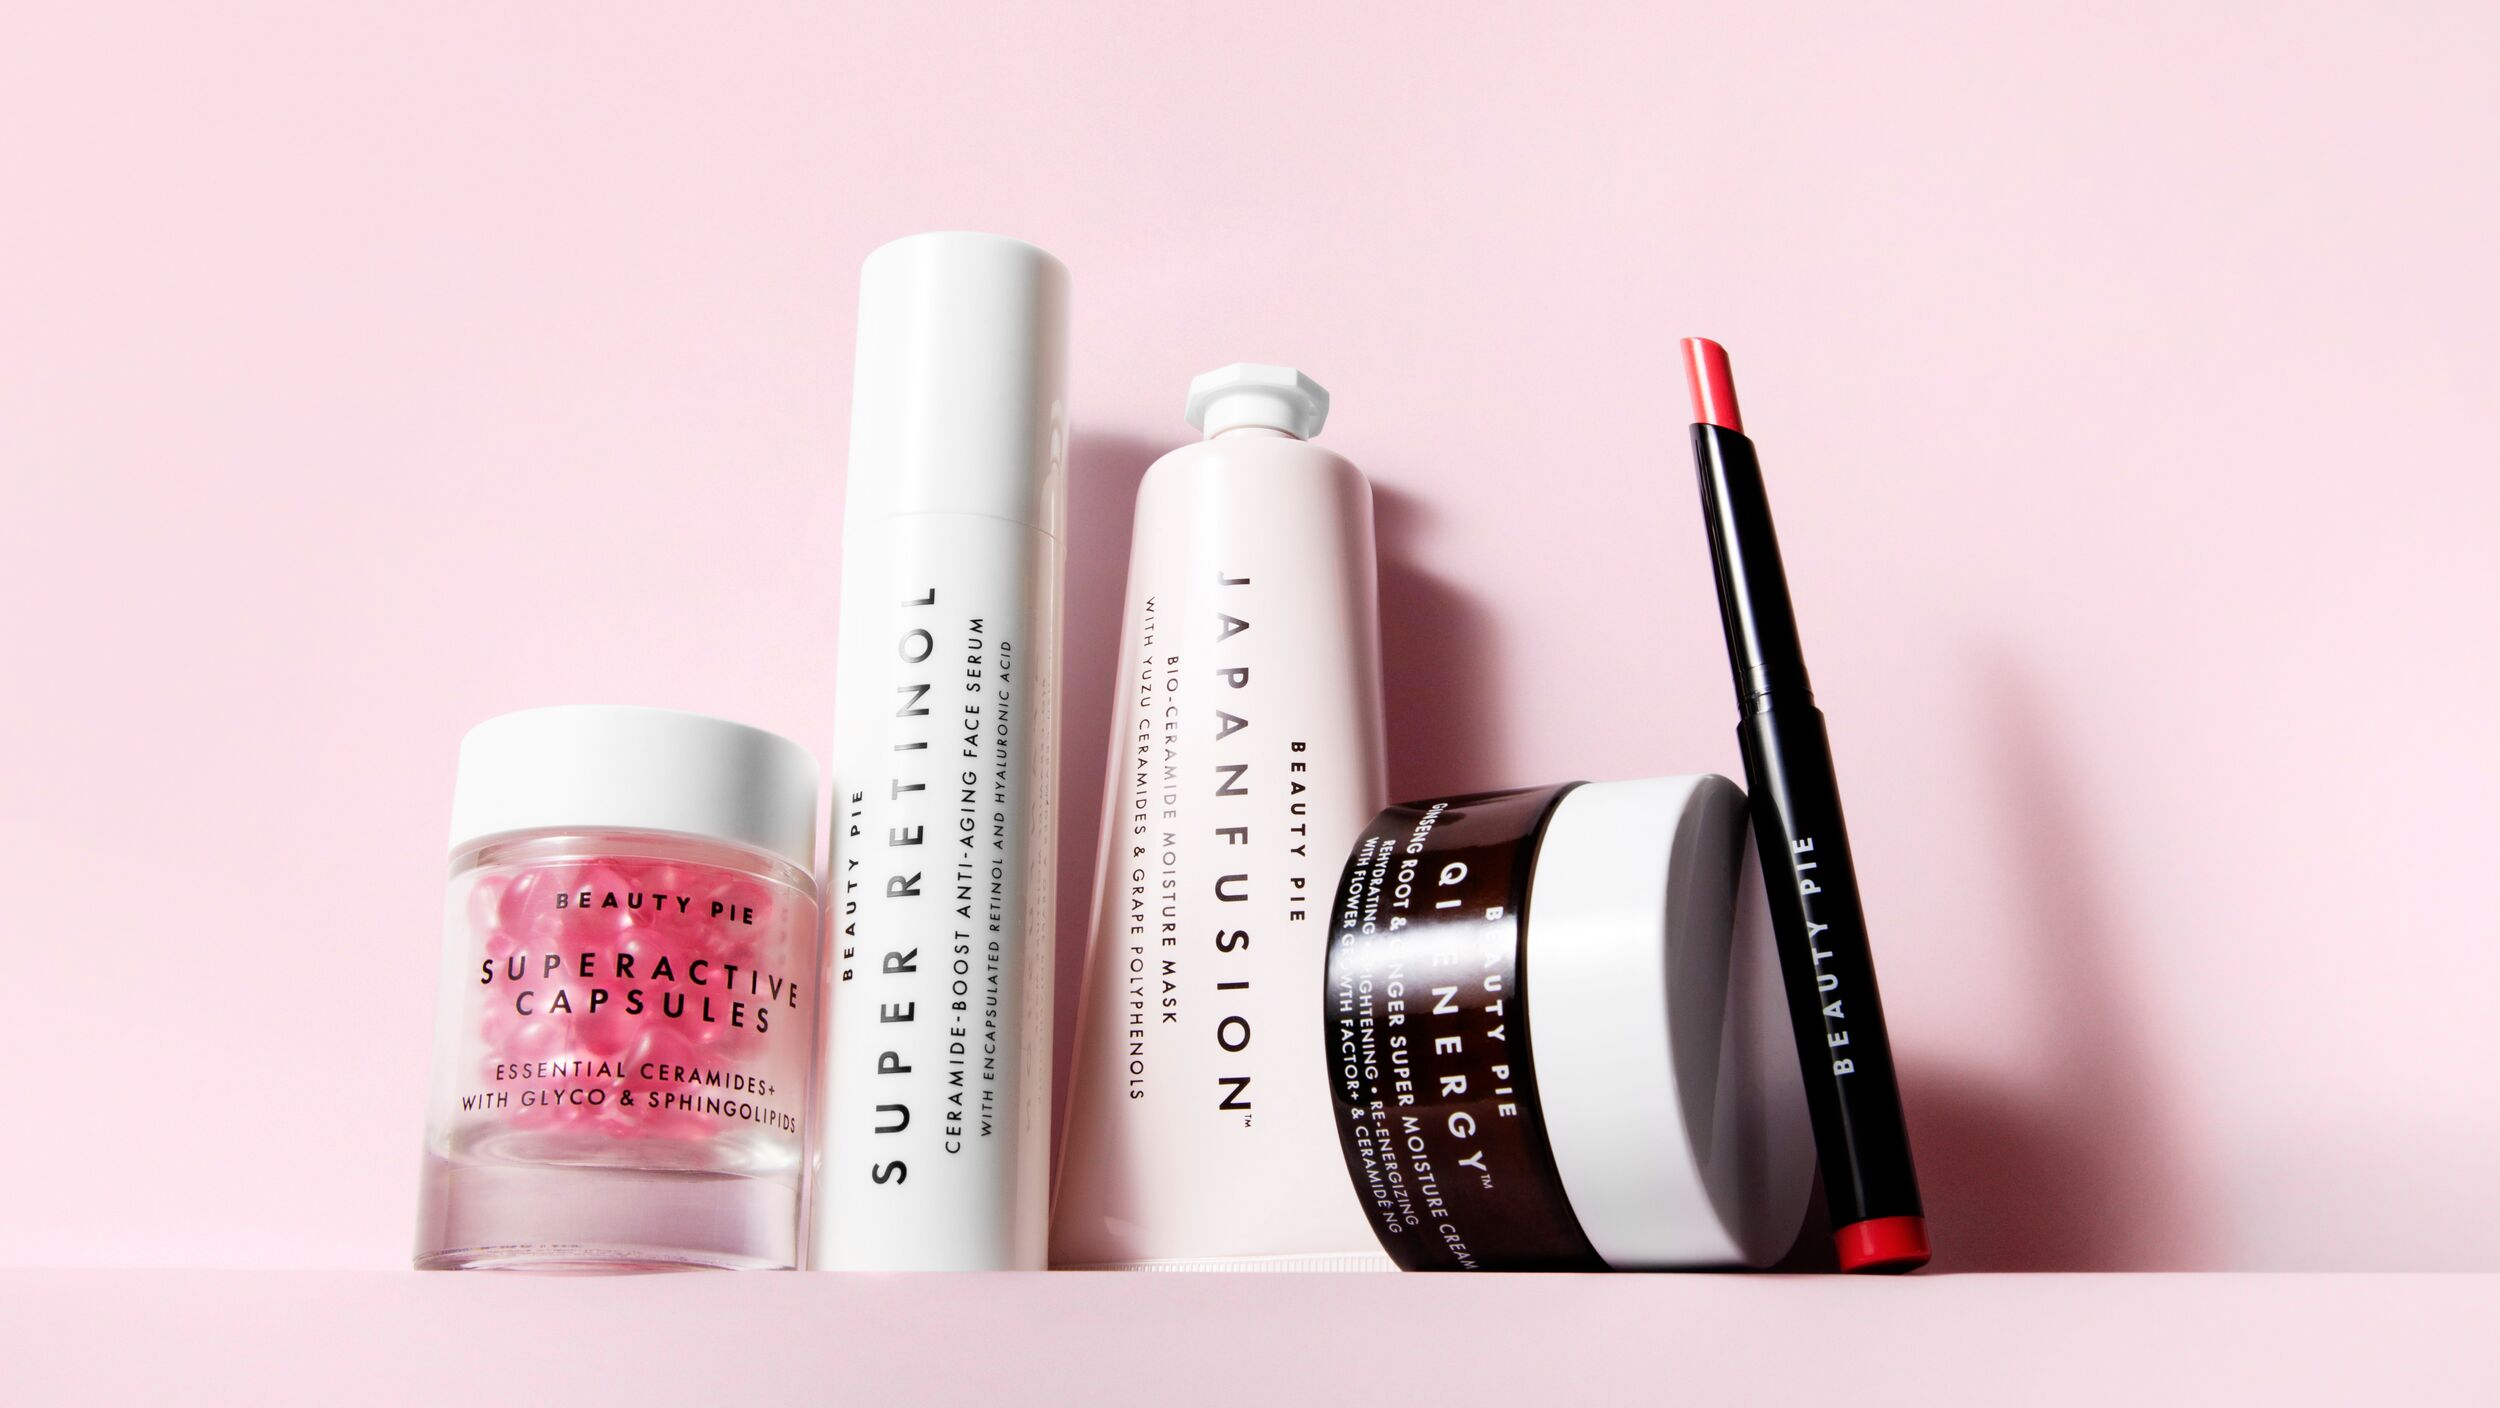 Best deal on BEAUTY PIE products